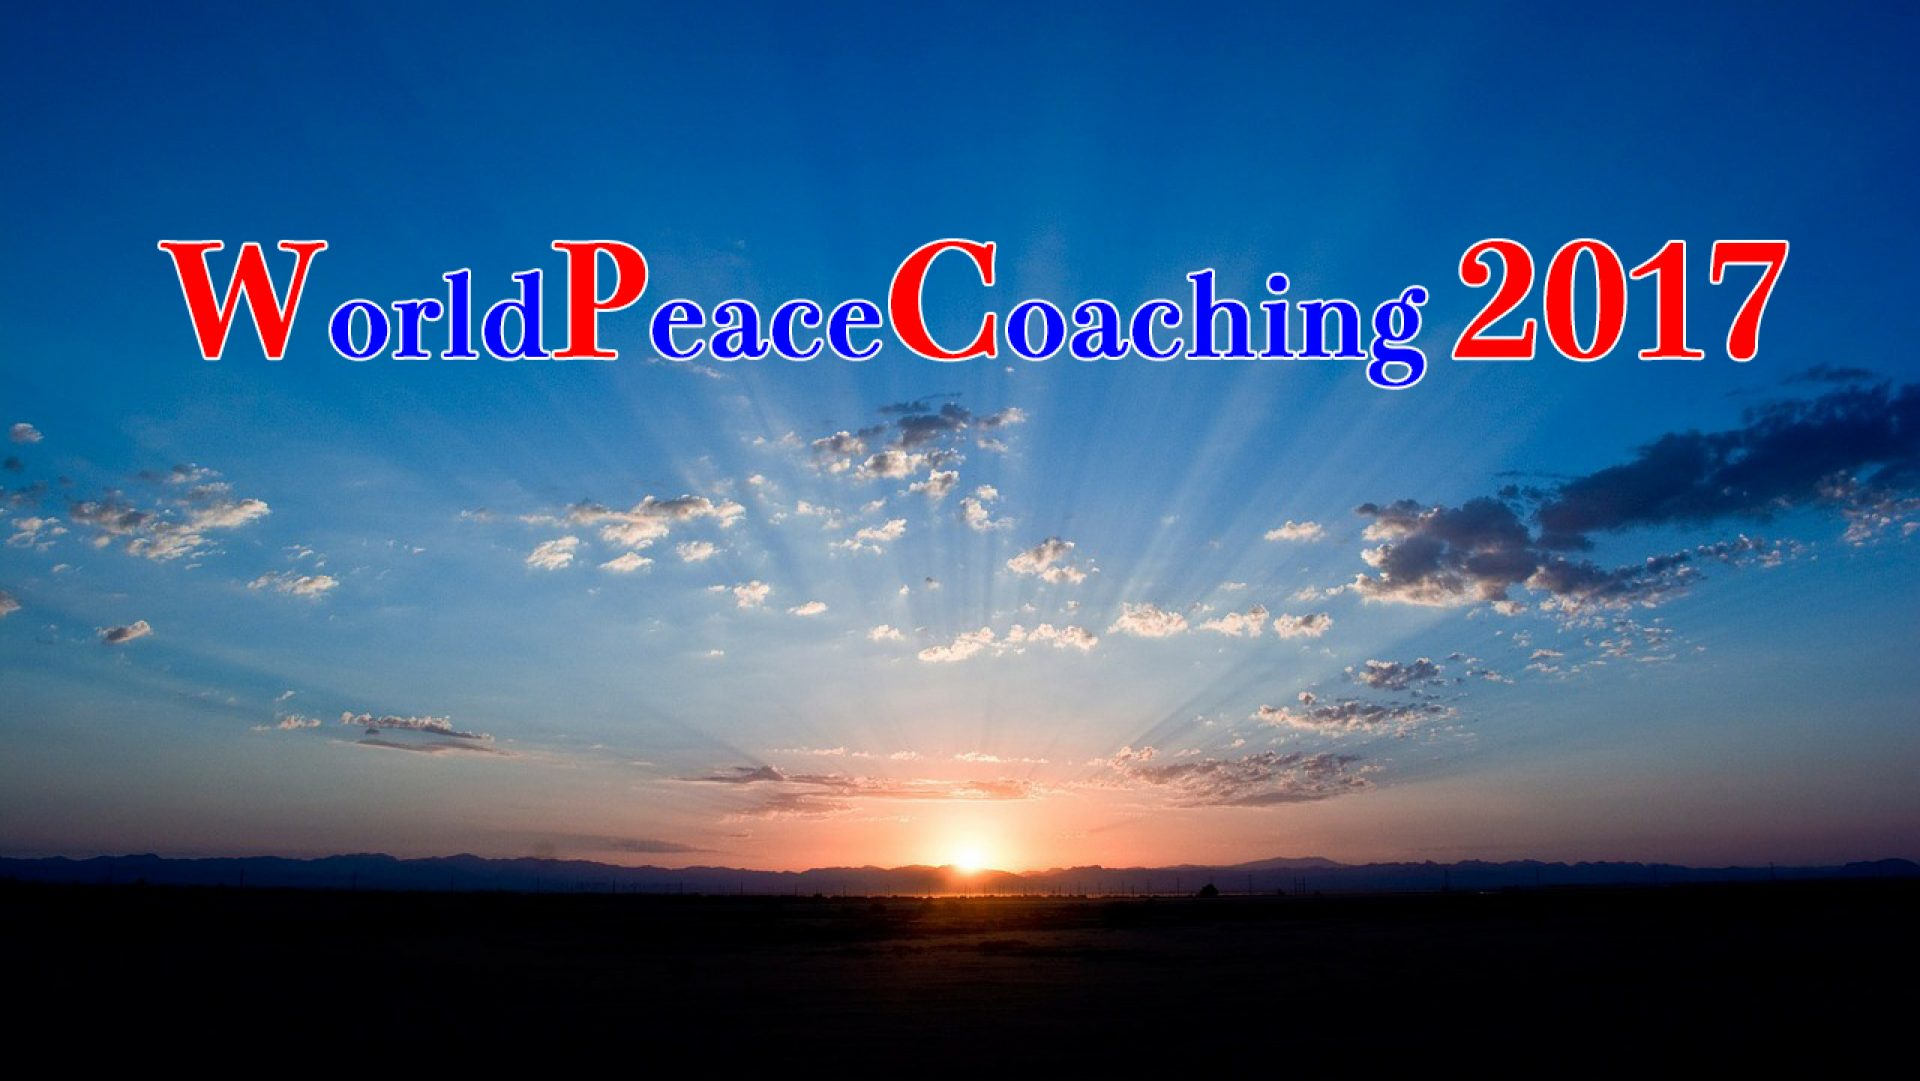 WorldPeaceCoaching